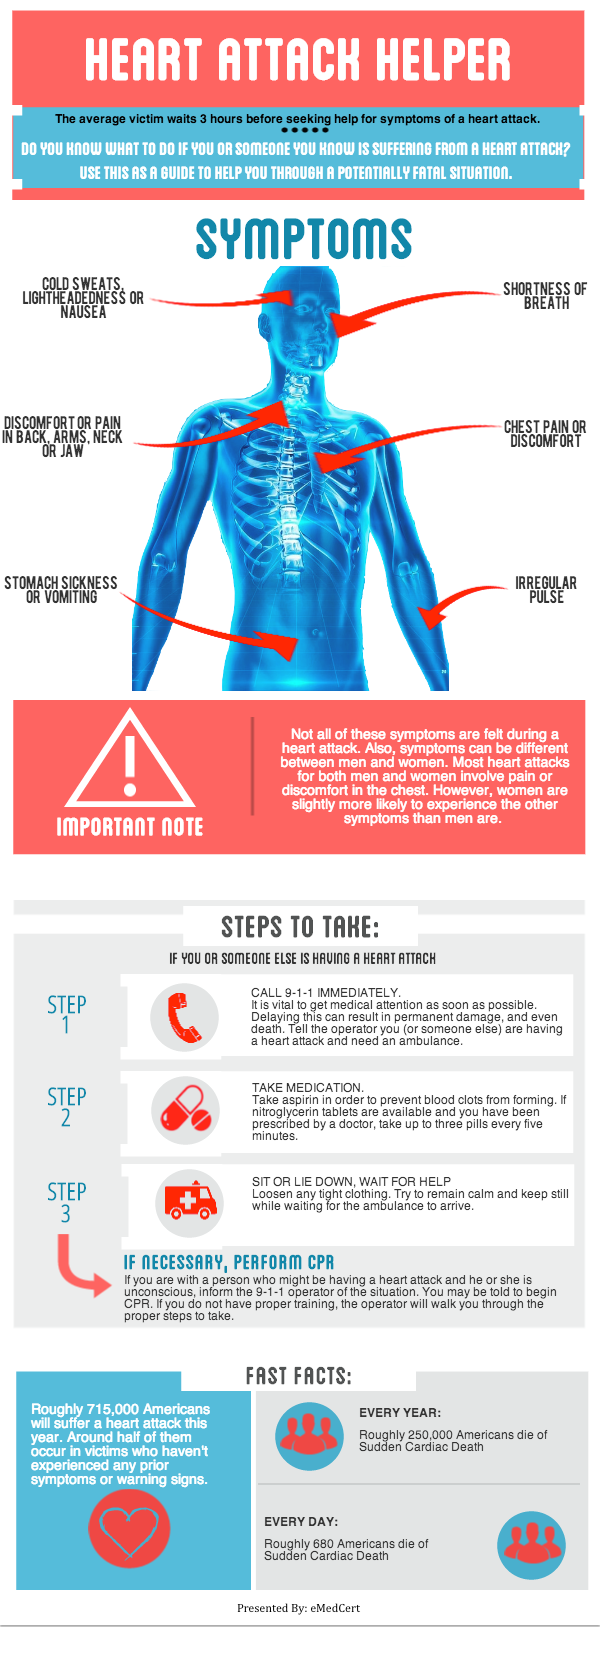 Heart Attack Helper Infographic Full | eMedCert